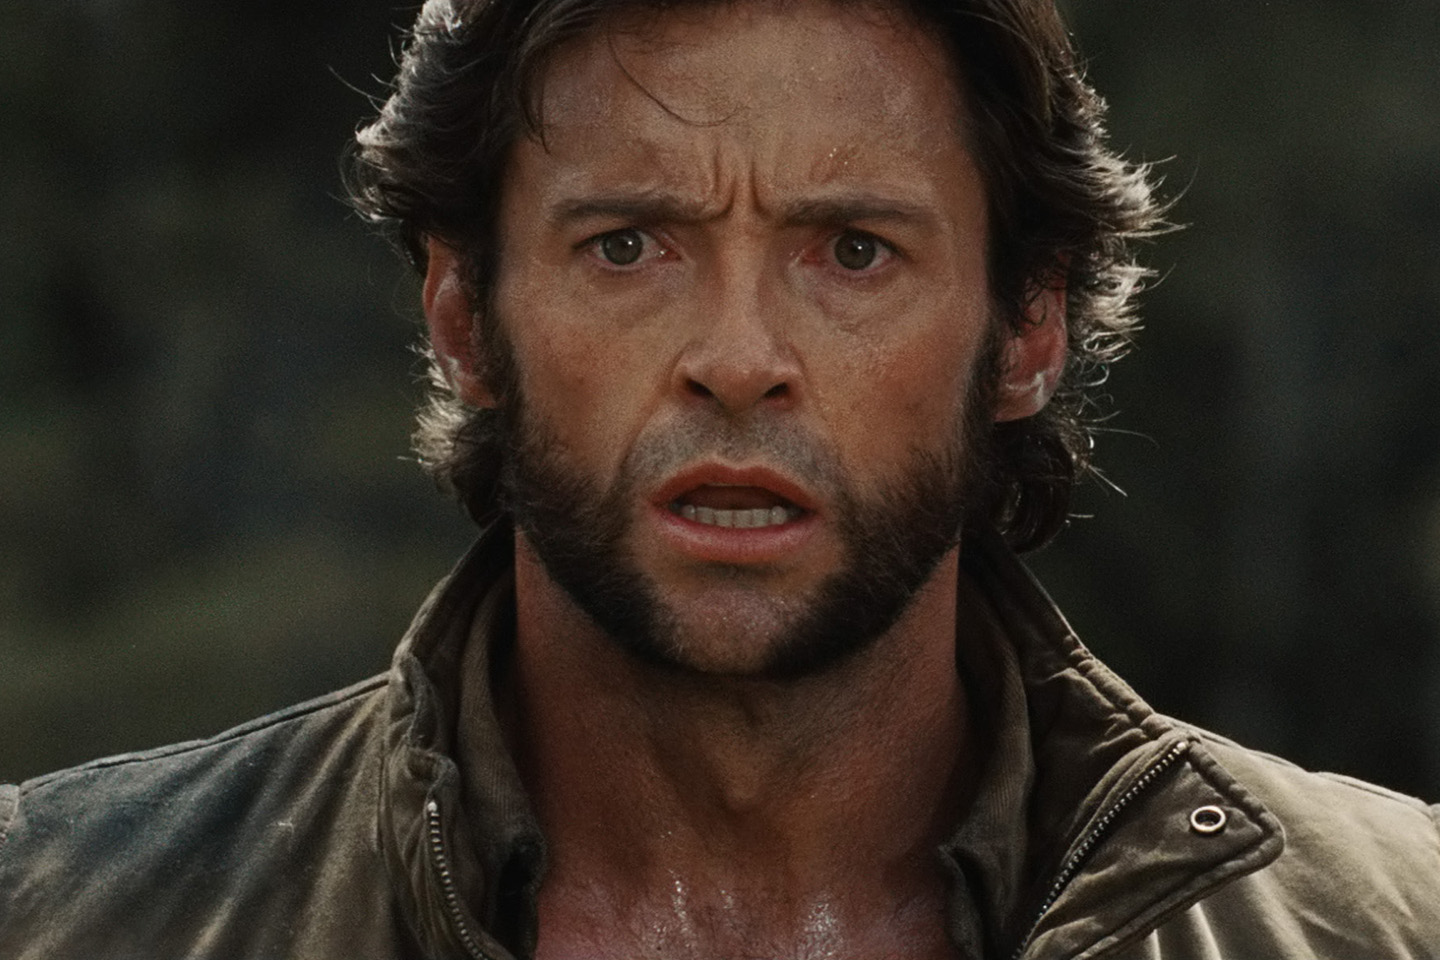 Hugh Jackman As Wolverine Images Wolverine Hd Wallpaper And